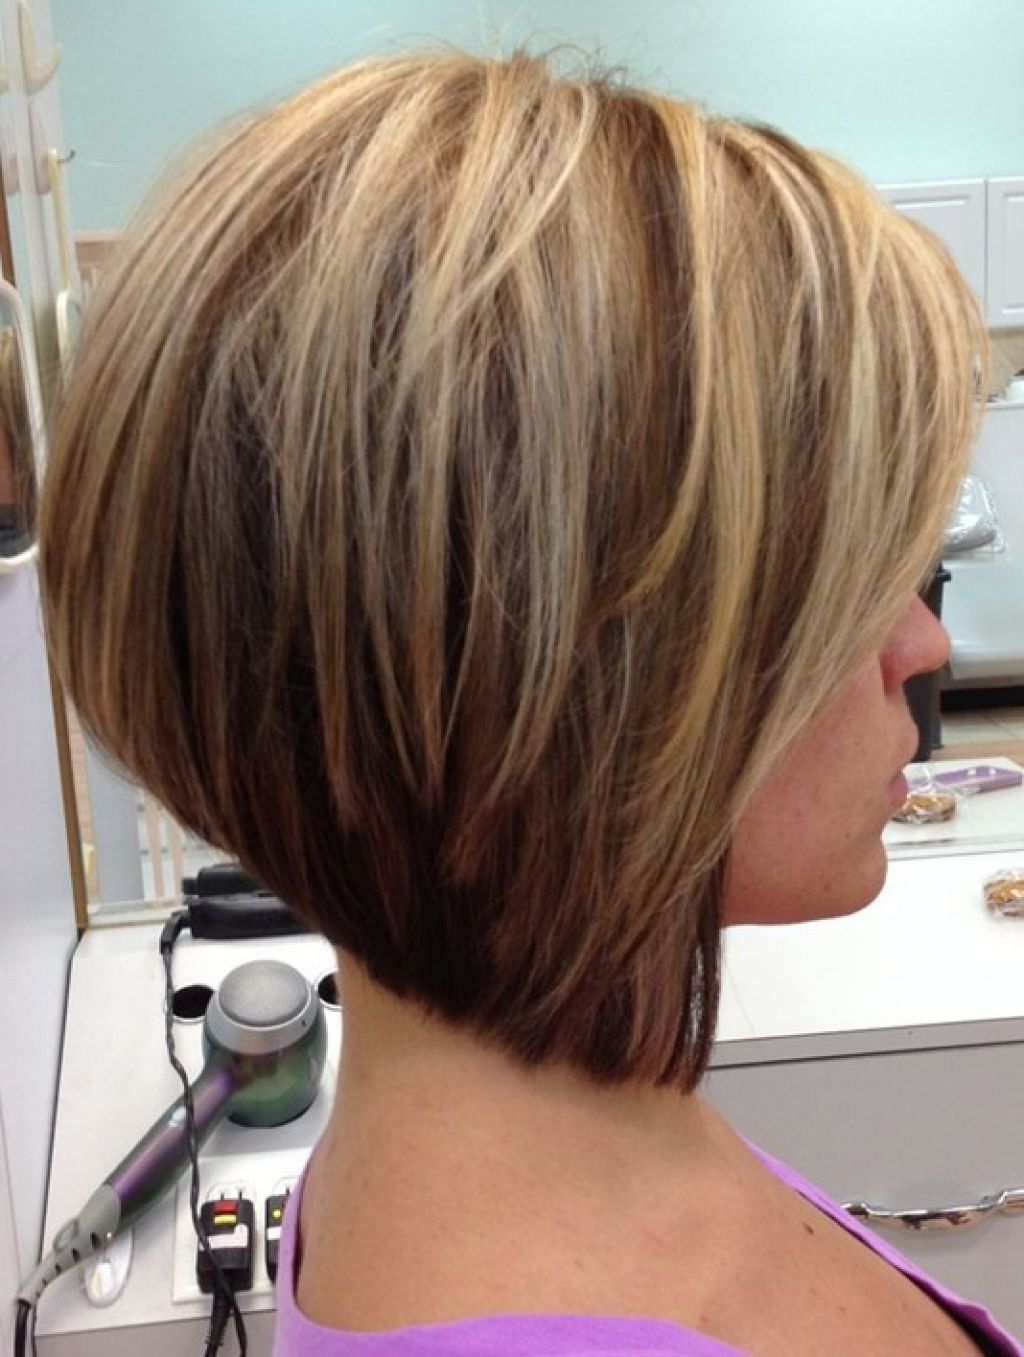 Back view of stacked bob haircut - Hairstyles short stacked bob hairstyles back view top hairstyles ideas short stacked hairstyles